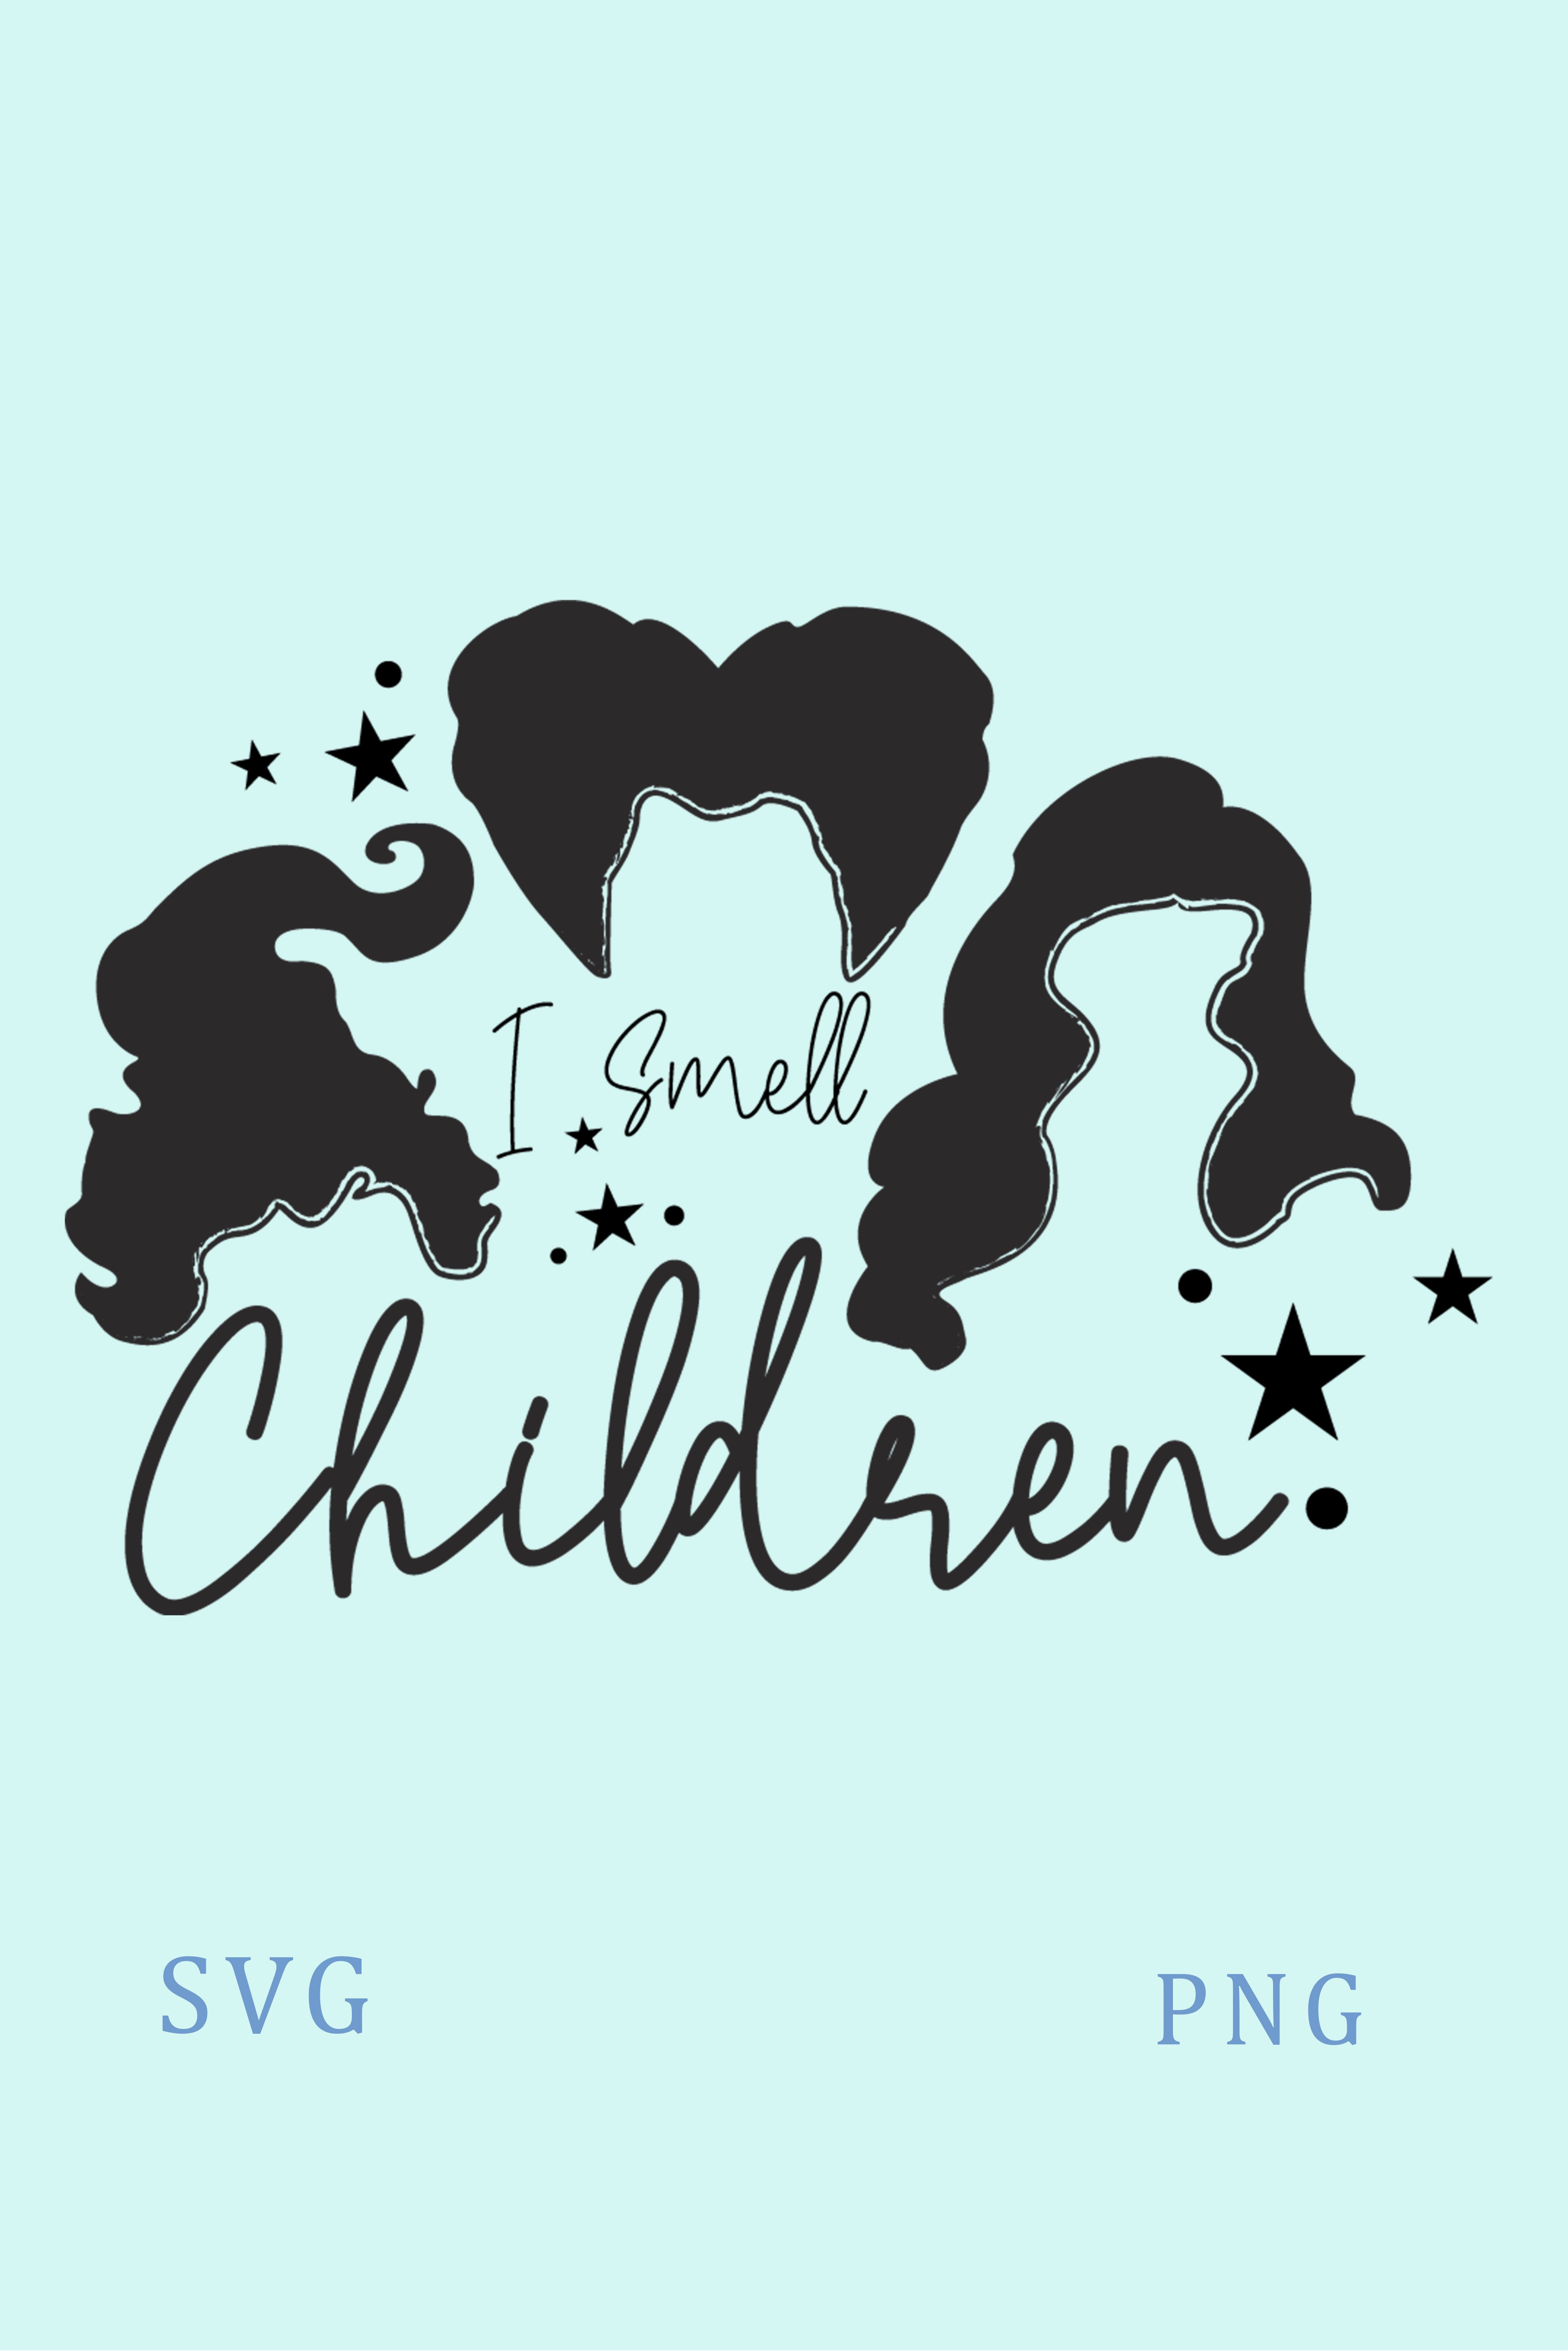 I Smell Children Svg Hocus Pocus Winnie I Smell A Child Etsy Funny Halloween Shirt How To Make Tshirts Halloween Funny